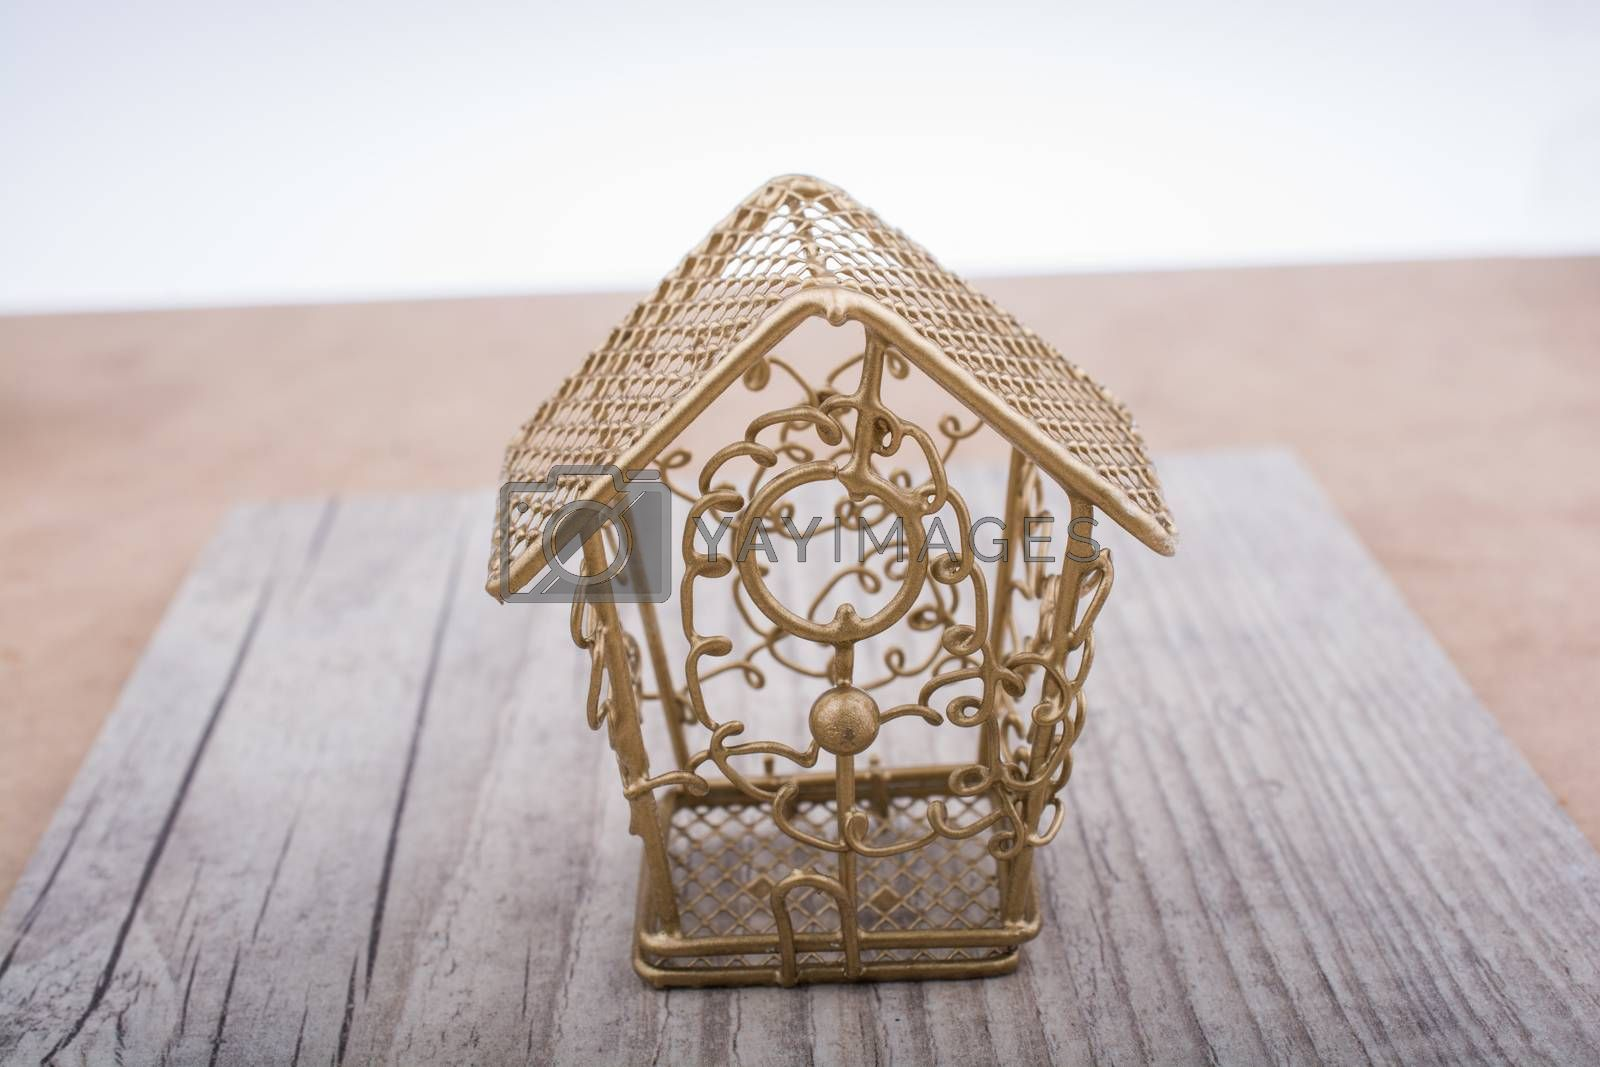 Little white bird house made of metal